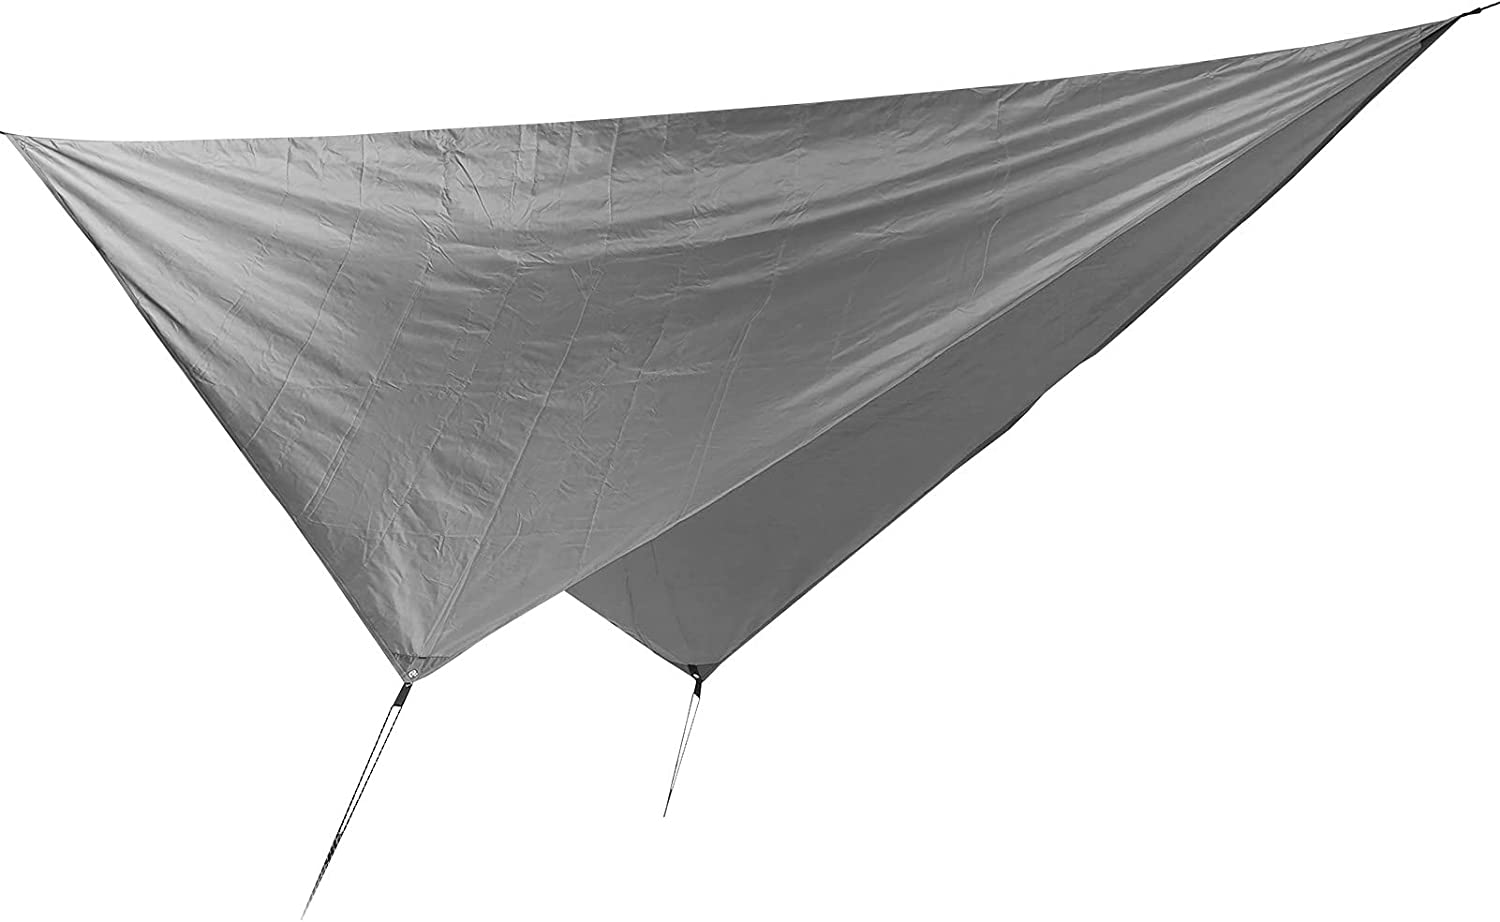 Alomejor 360x290cm Sun Shelter Camping Tent Fixed price for sale Cover Multifunction New arrival